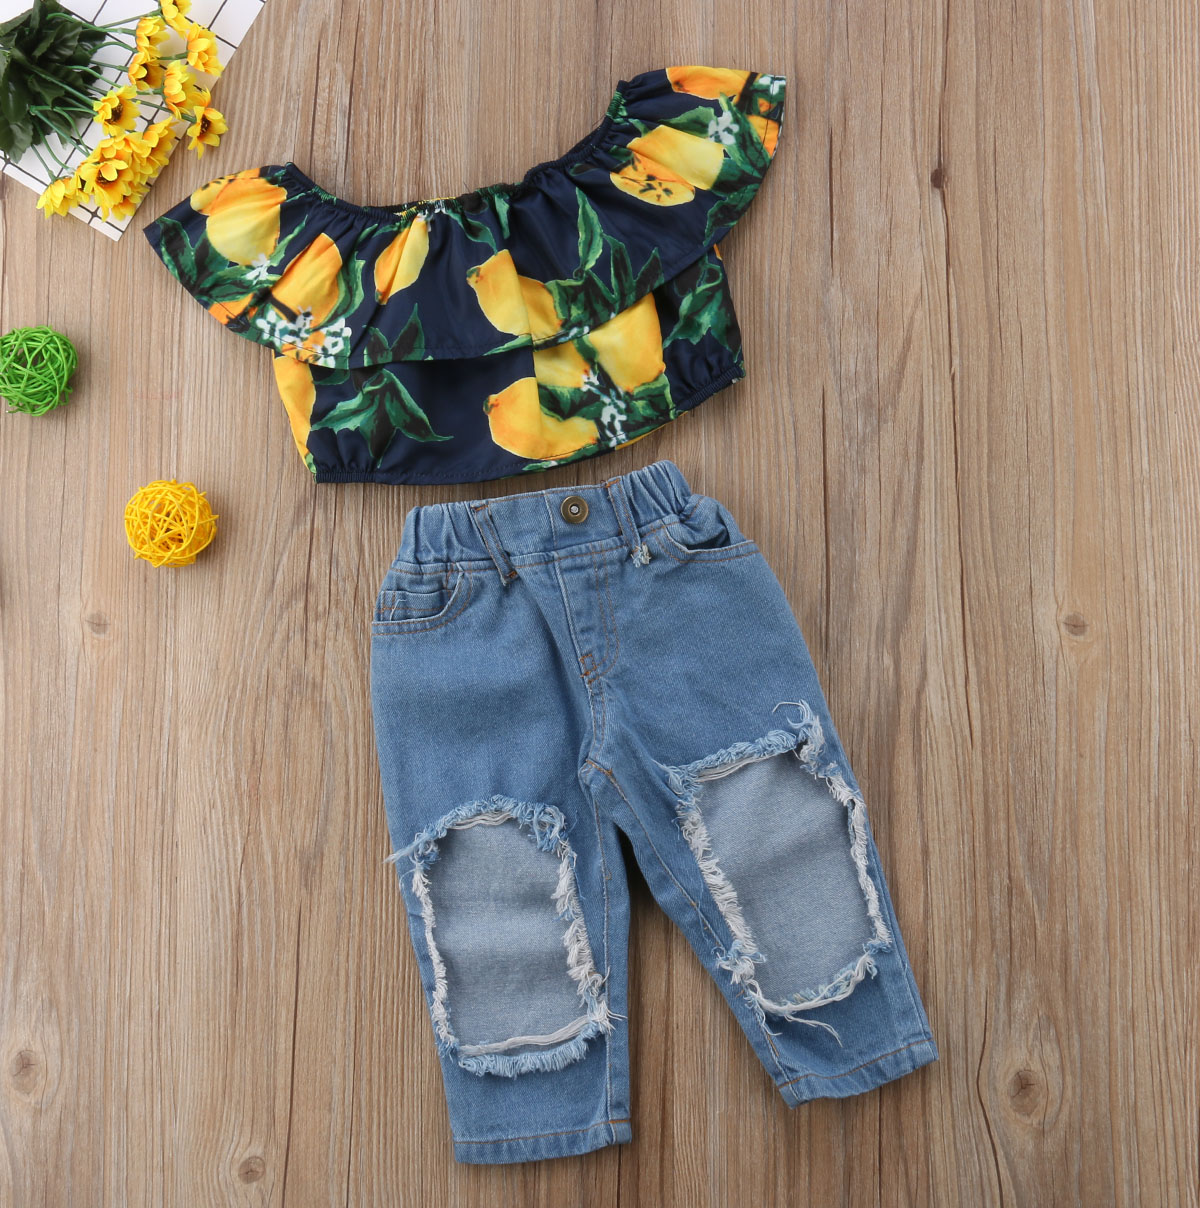 fd868806f91e 2PCS Set Baby Girls Kids Outfits Casual Lemon Off Shoulder Tops Sleeveless  T Shirt+Ripped Jeans Set Clothes-in Clothing Sets from Mother & Kids on ...